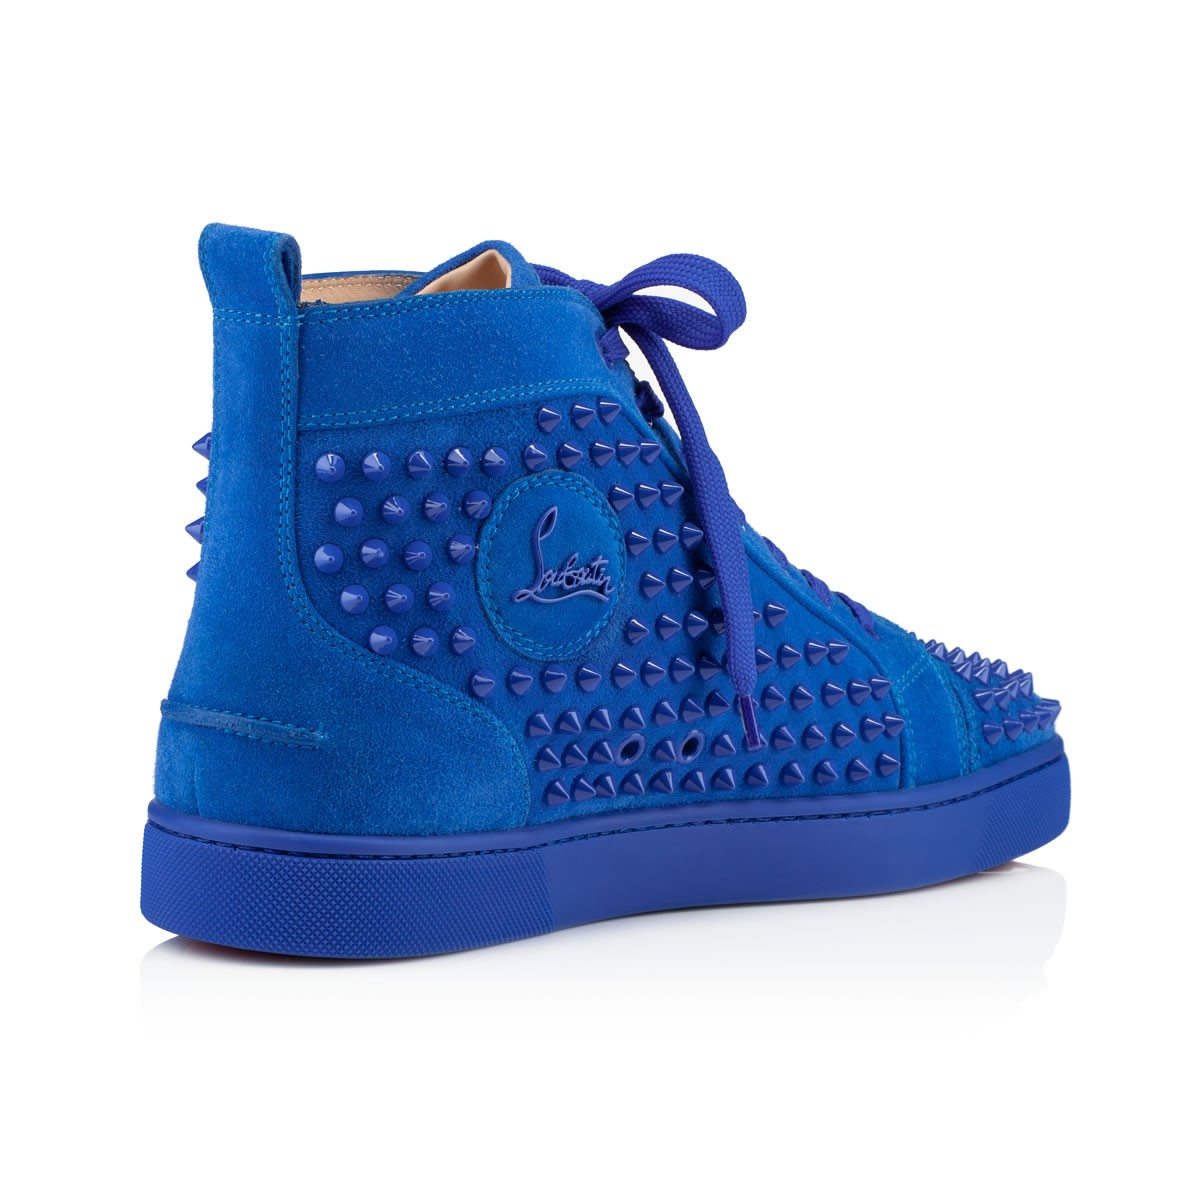 0d990ef8941 Lyst - Christian Louboutin Men s Louis Flat Sneakers in Blue for Men